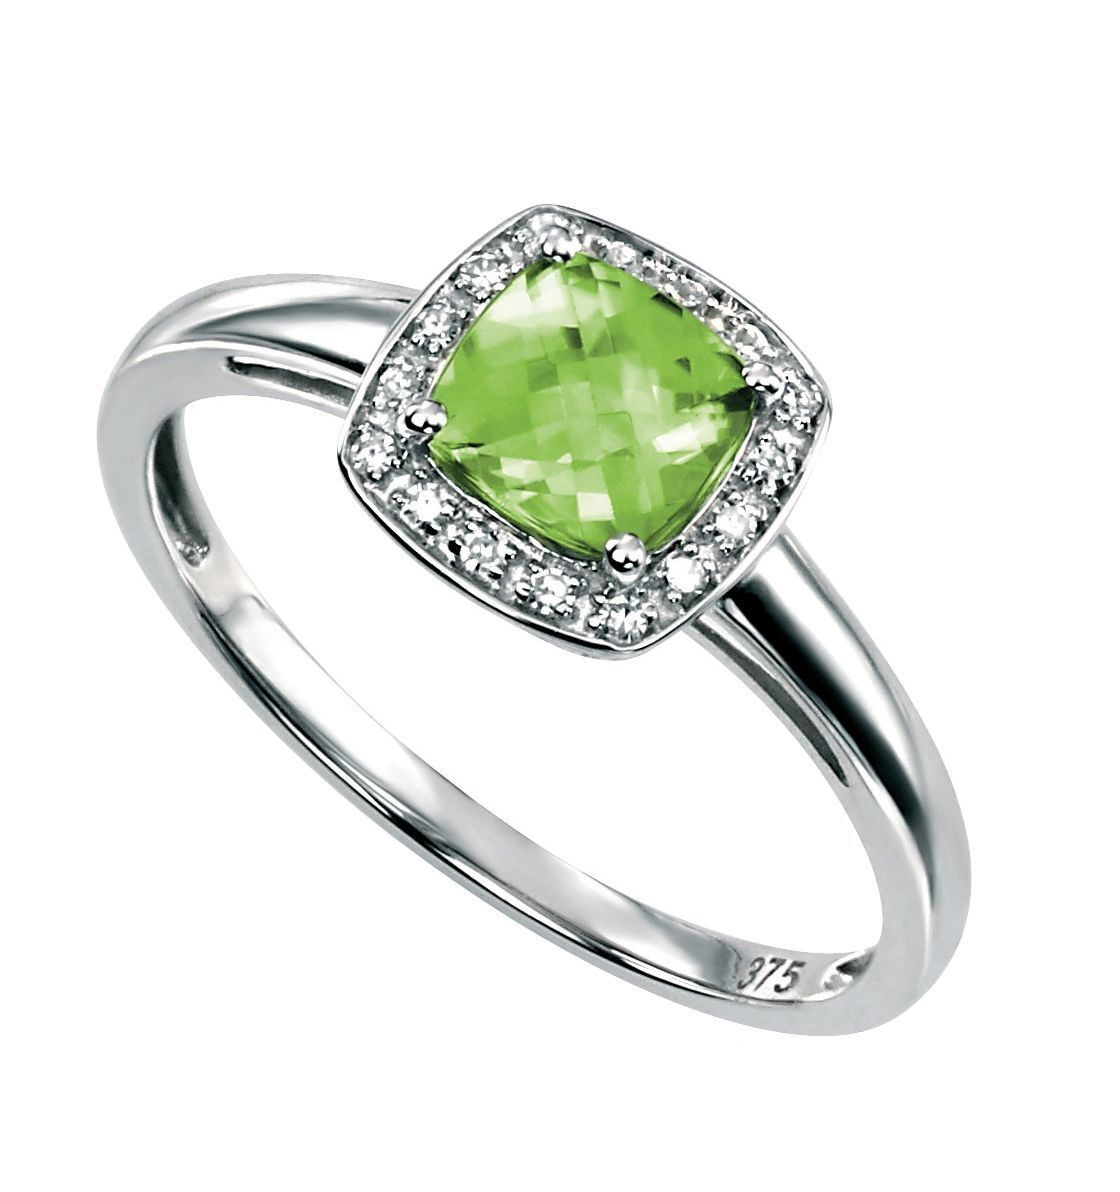 Designer - Elements gold - 9ct White gold Peridot & Diamond Ring